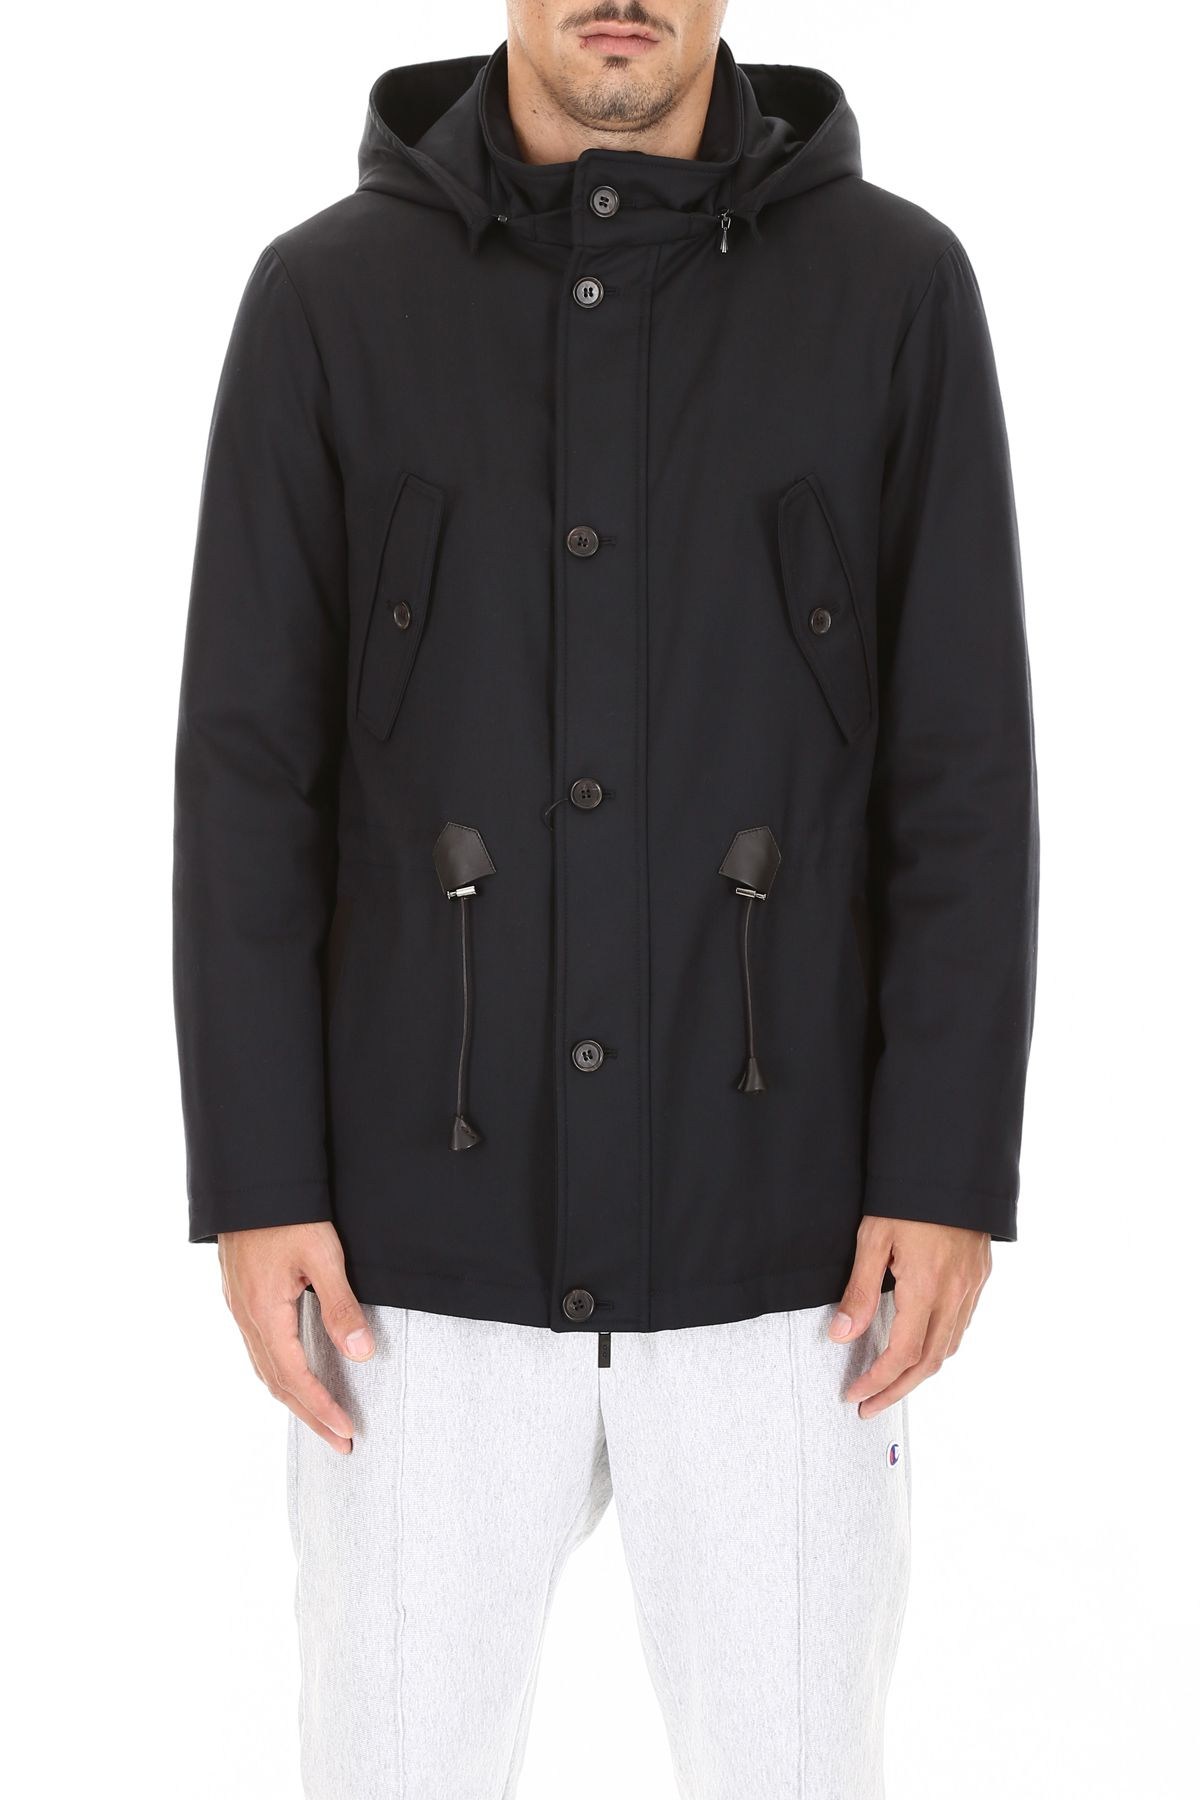 CC COLLECTION CORNELIANI Parka With Leather Details in Navy